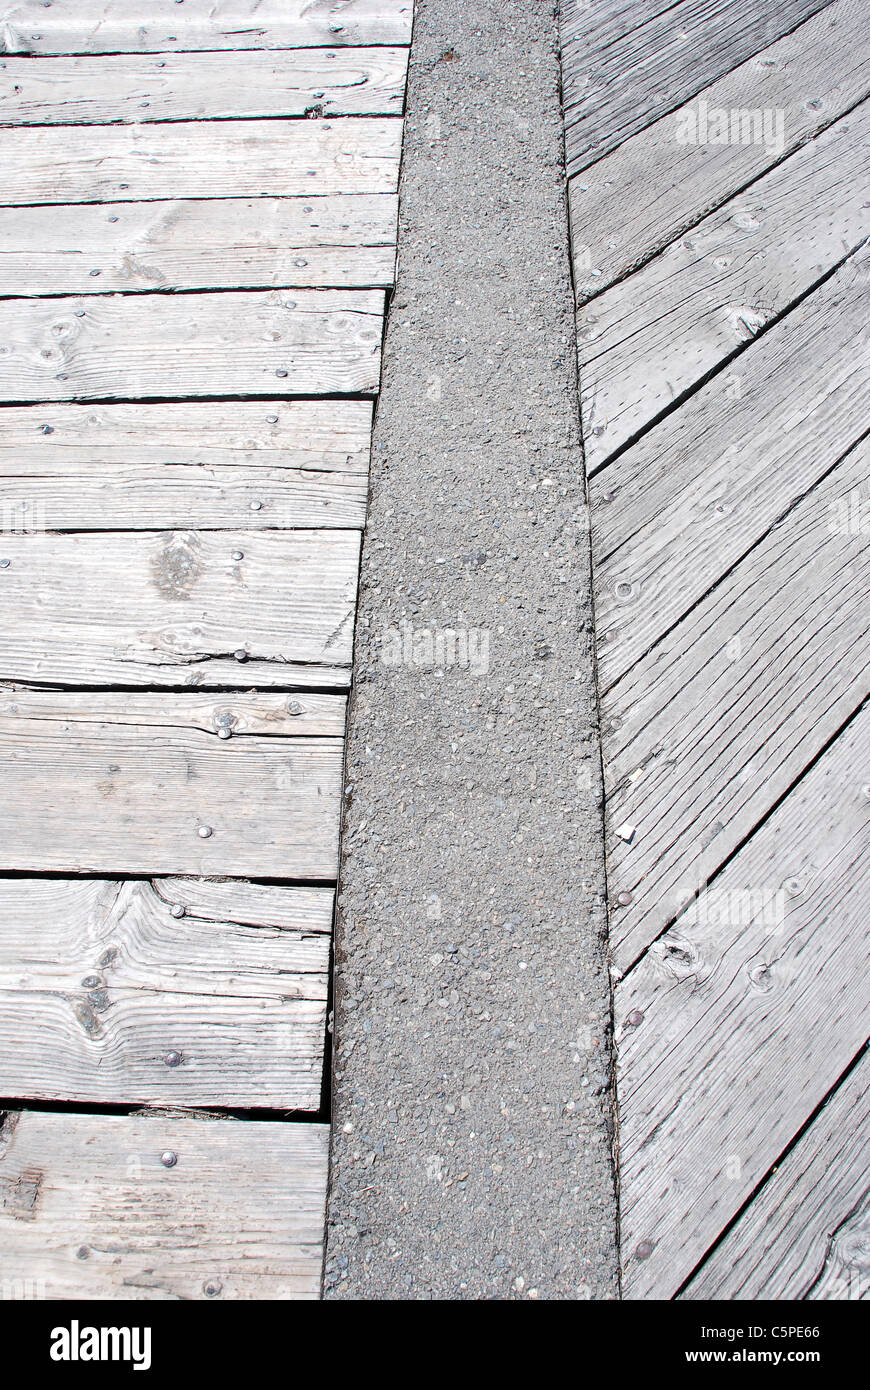 Weatherbeaten wooden walkway laid out in an interesting pattern divided by a cement barrier - Stock Image